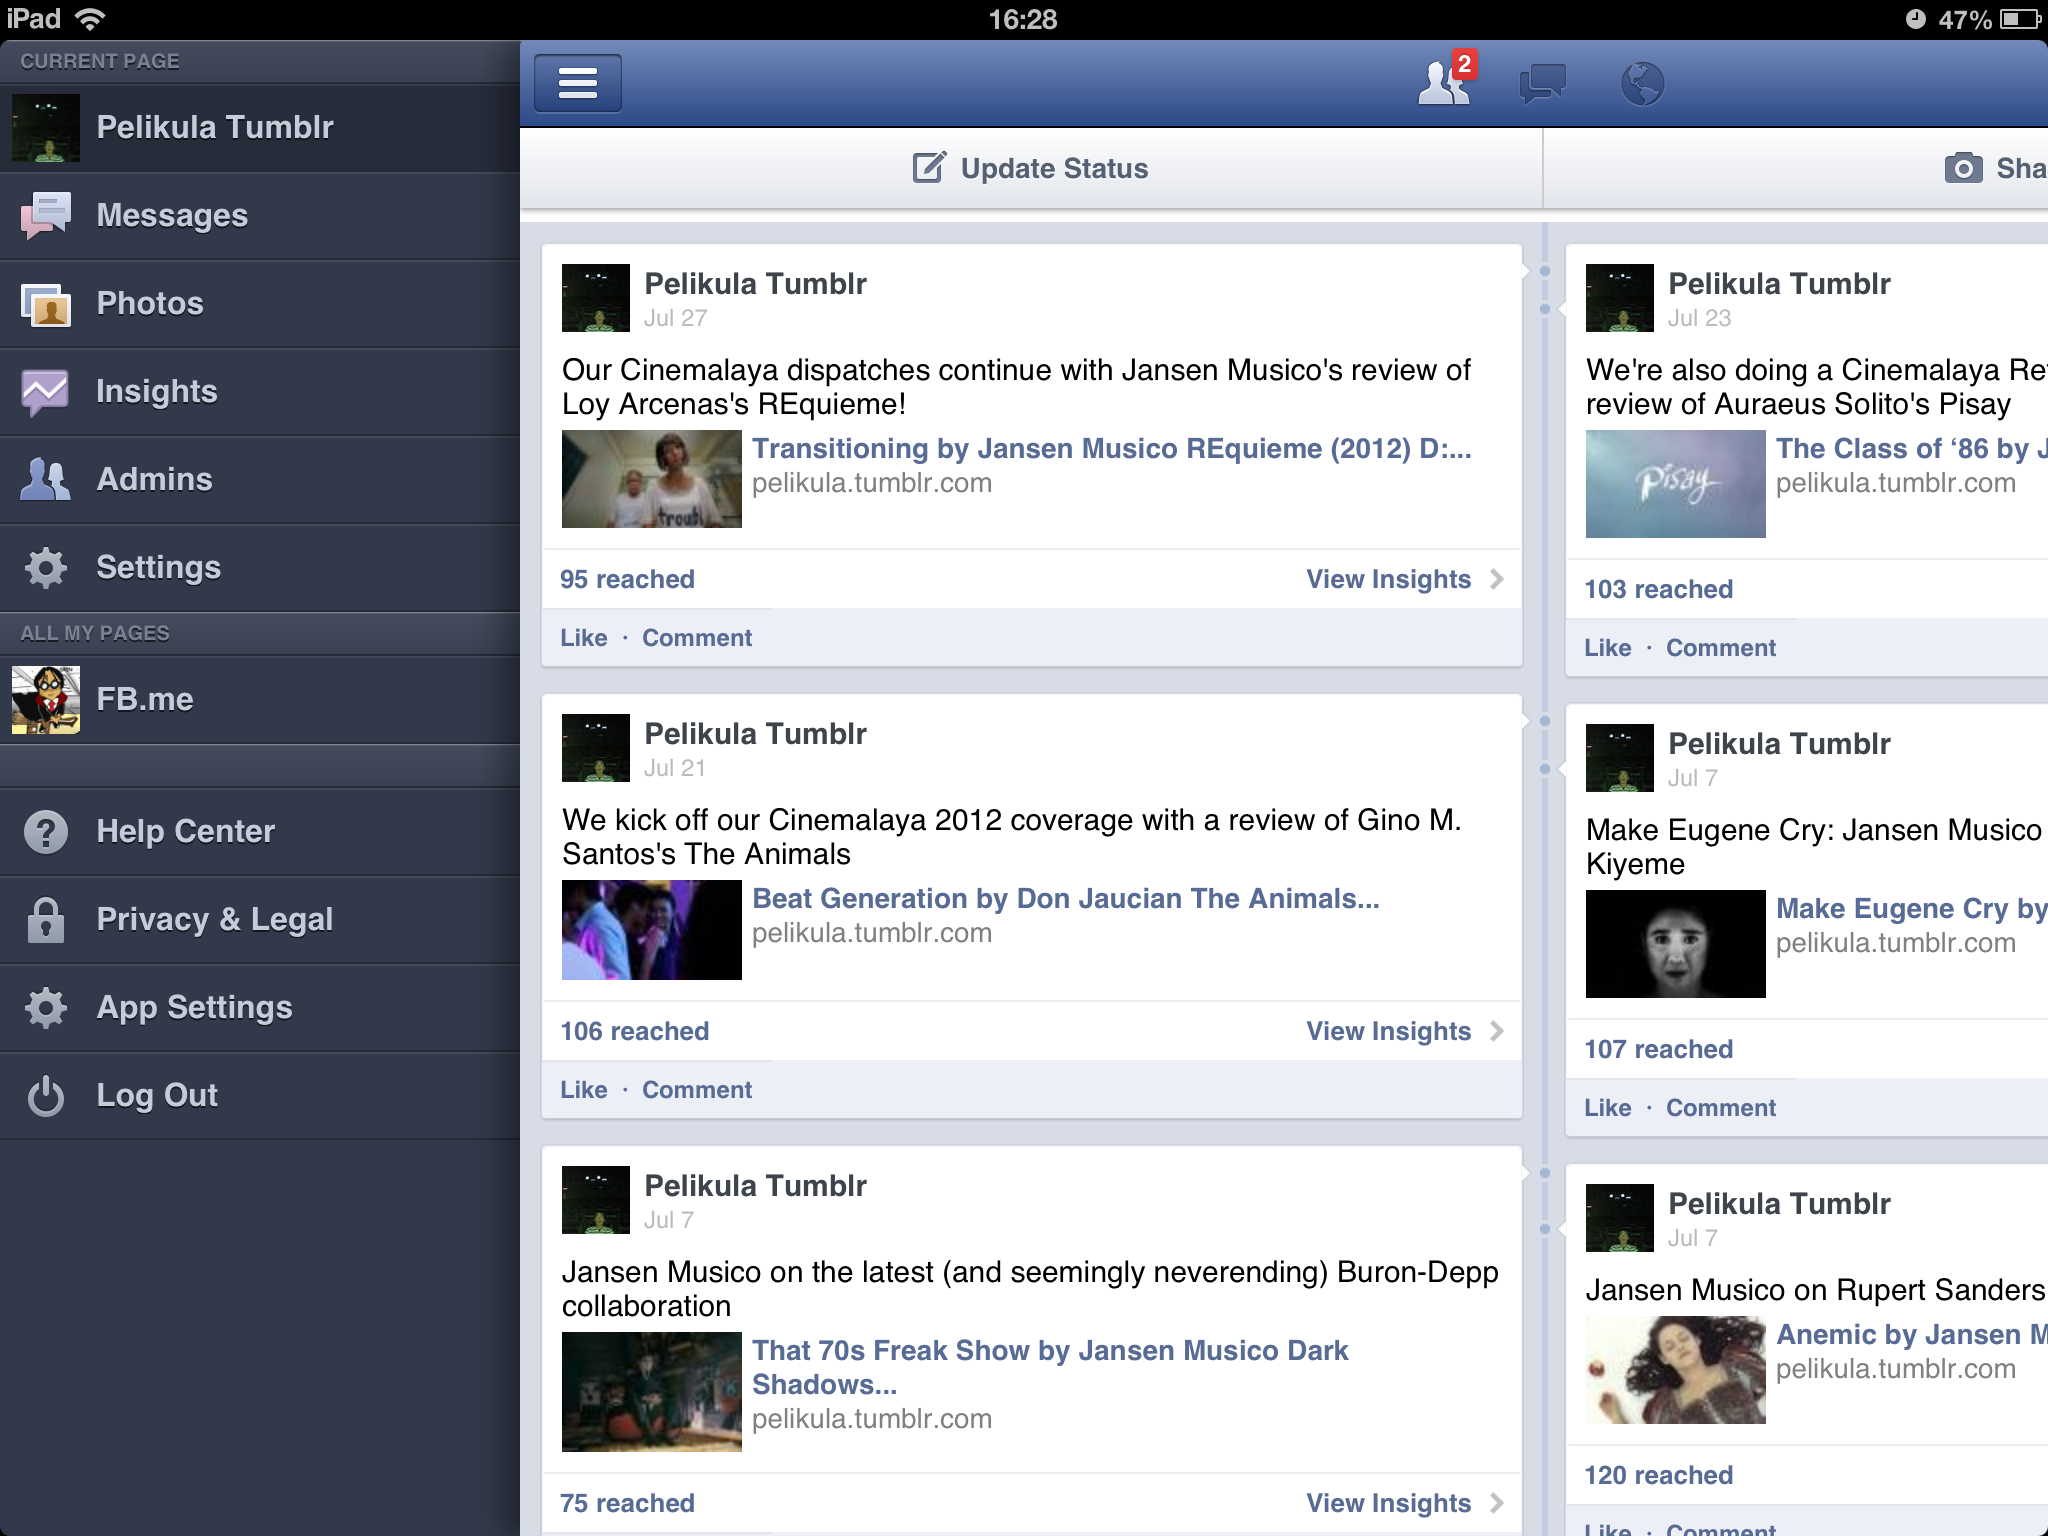 Facebook Pages Manager Gains iPad Landscape Support - Finally! - And More